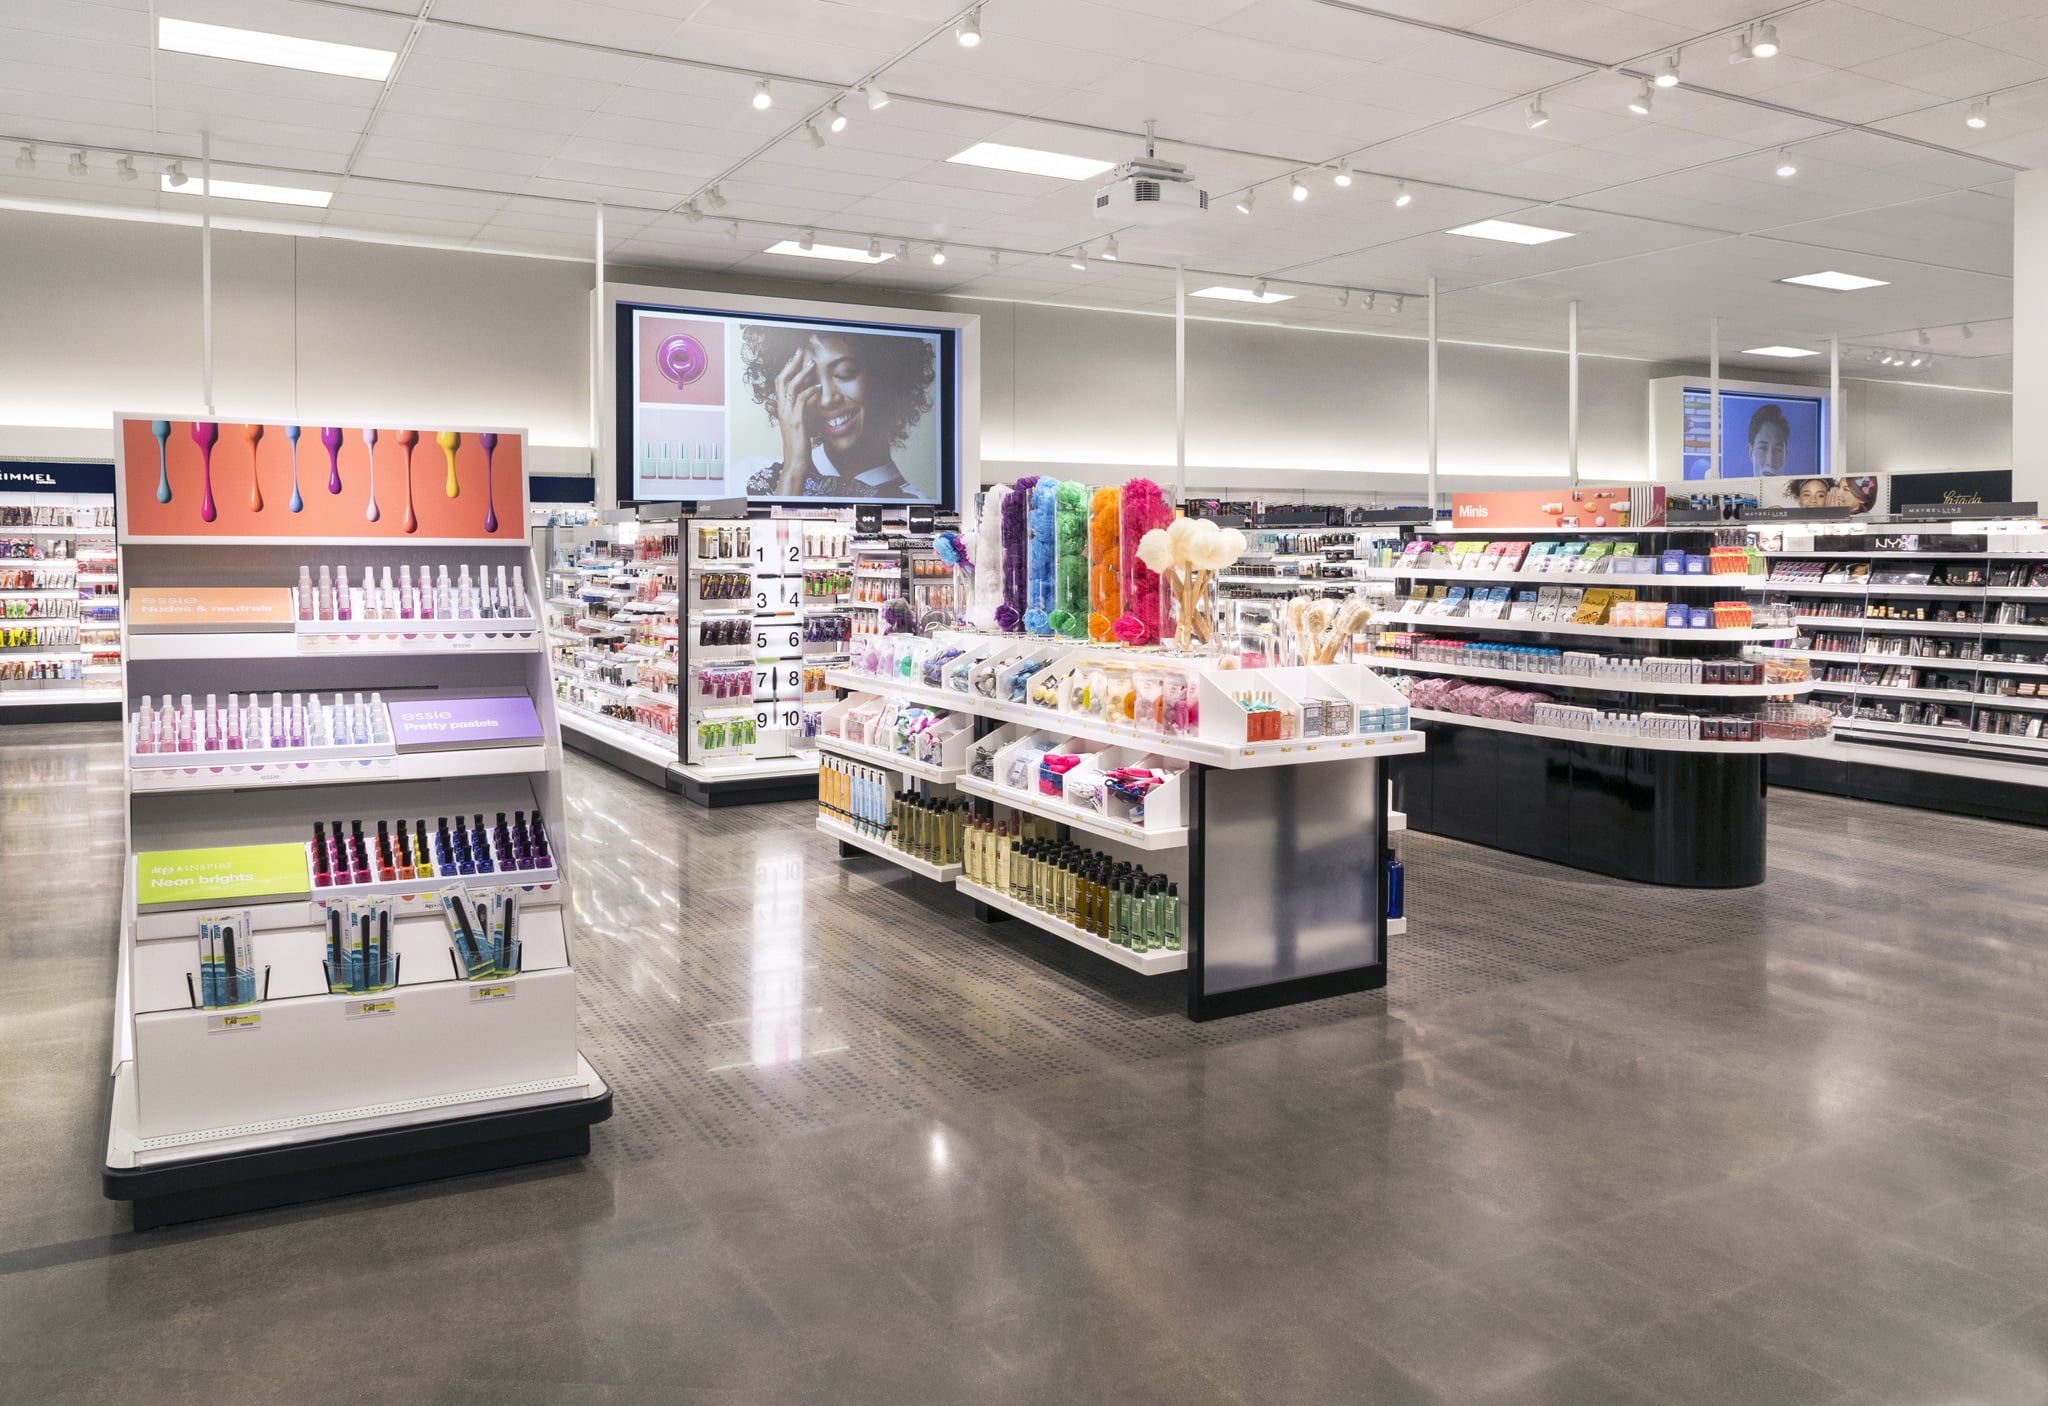 Back In September, The Makeup Addiction Page On Reddit Was In A Frenzy Over  Changes At An Arizona Target Storeu0027s Beauty Section.